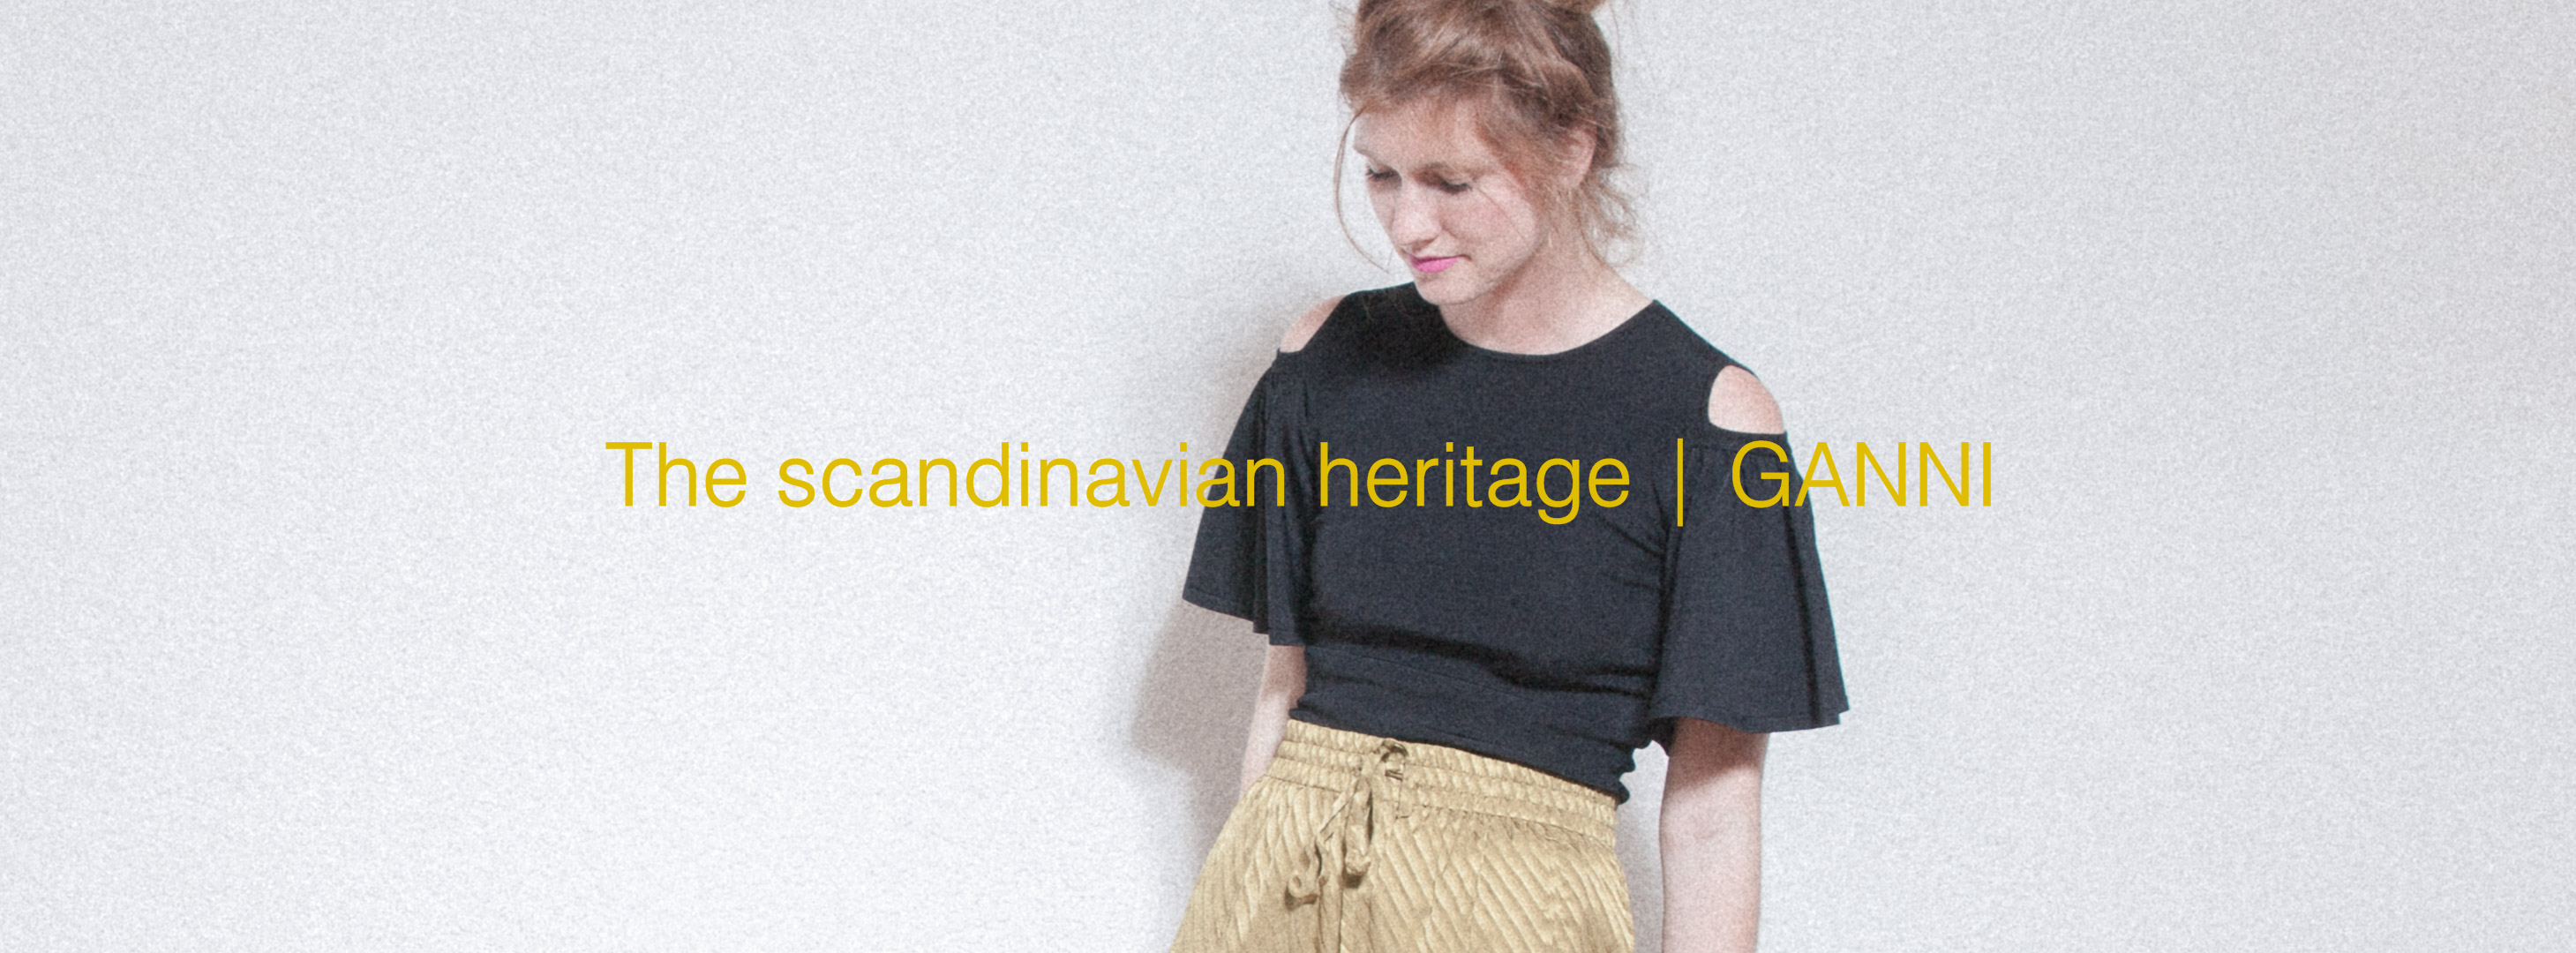 2. The scandinavian heritage_GANNI